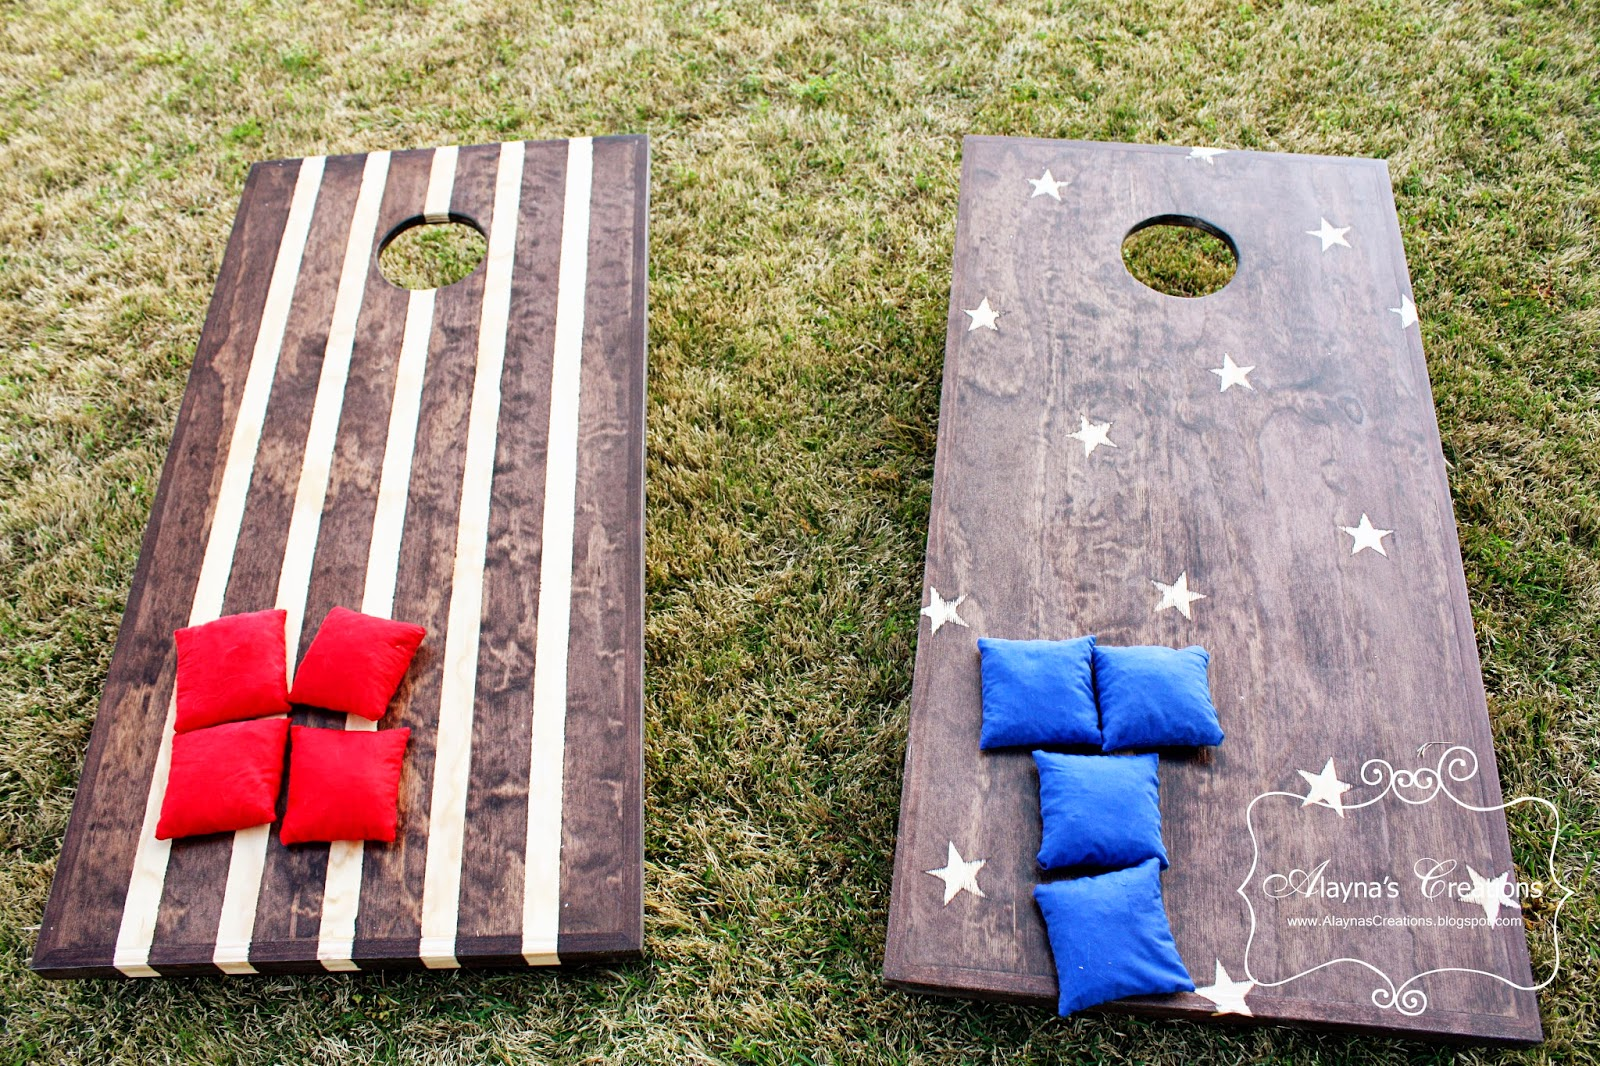 cornhole design ideas 25 best ideas about cornhole board designs cornhole design ideas - Cornhole Design Ideas